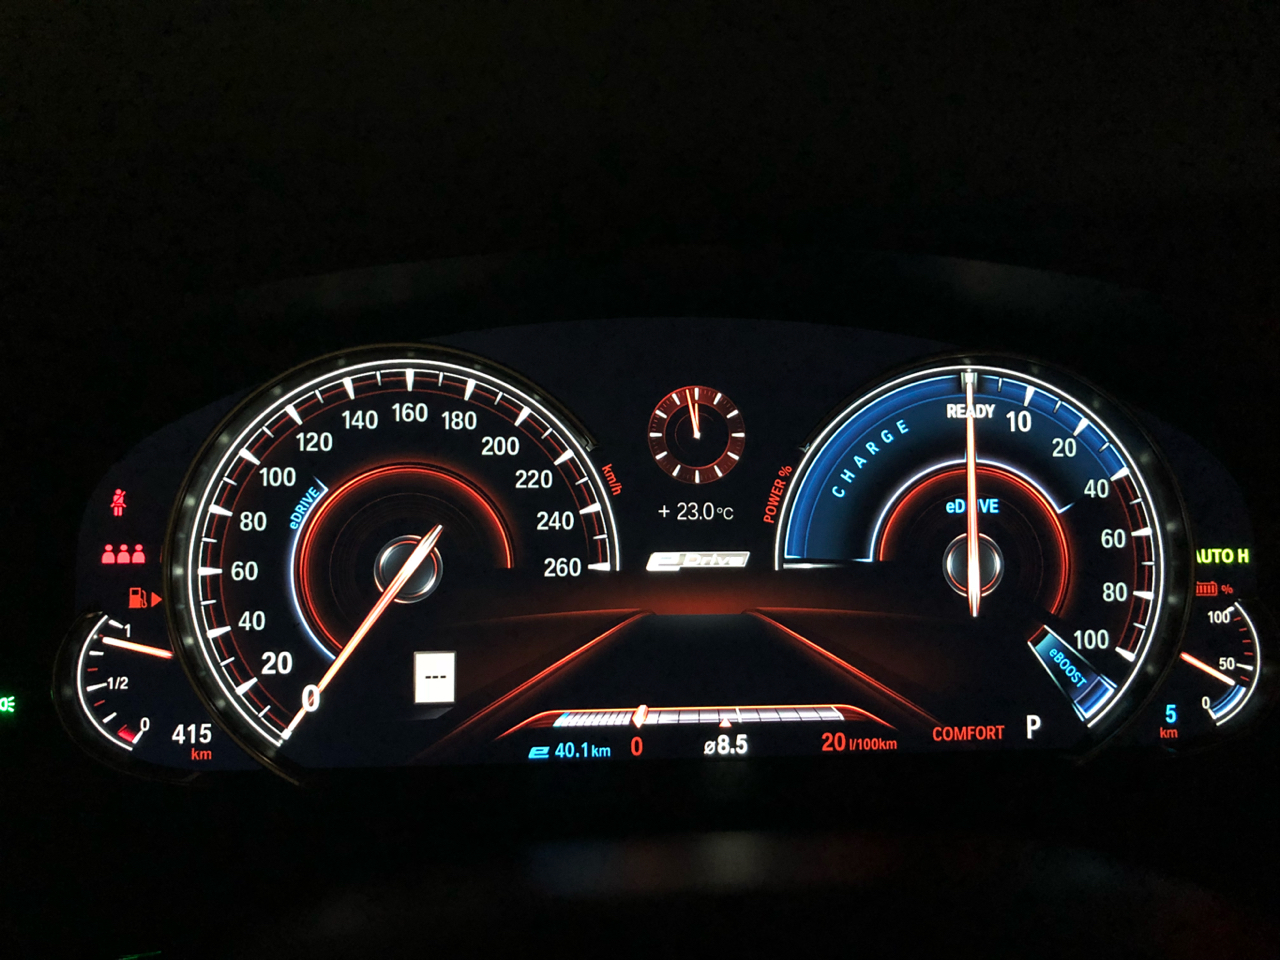 Can The Instrument Cluster Show Rpms In 530e